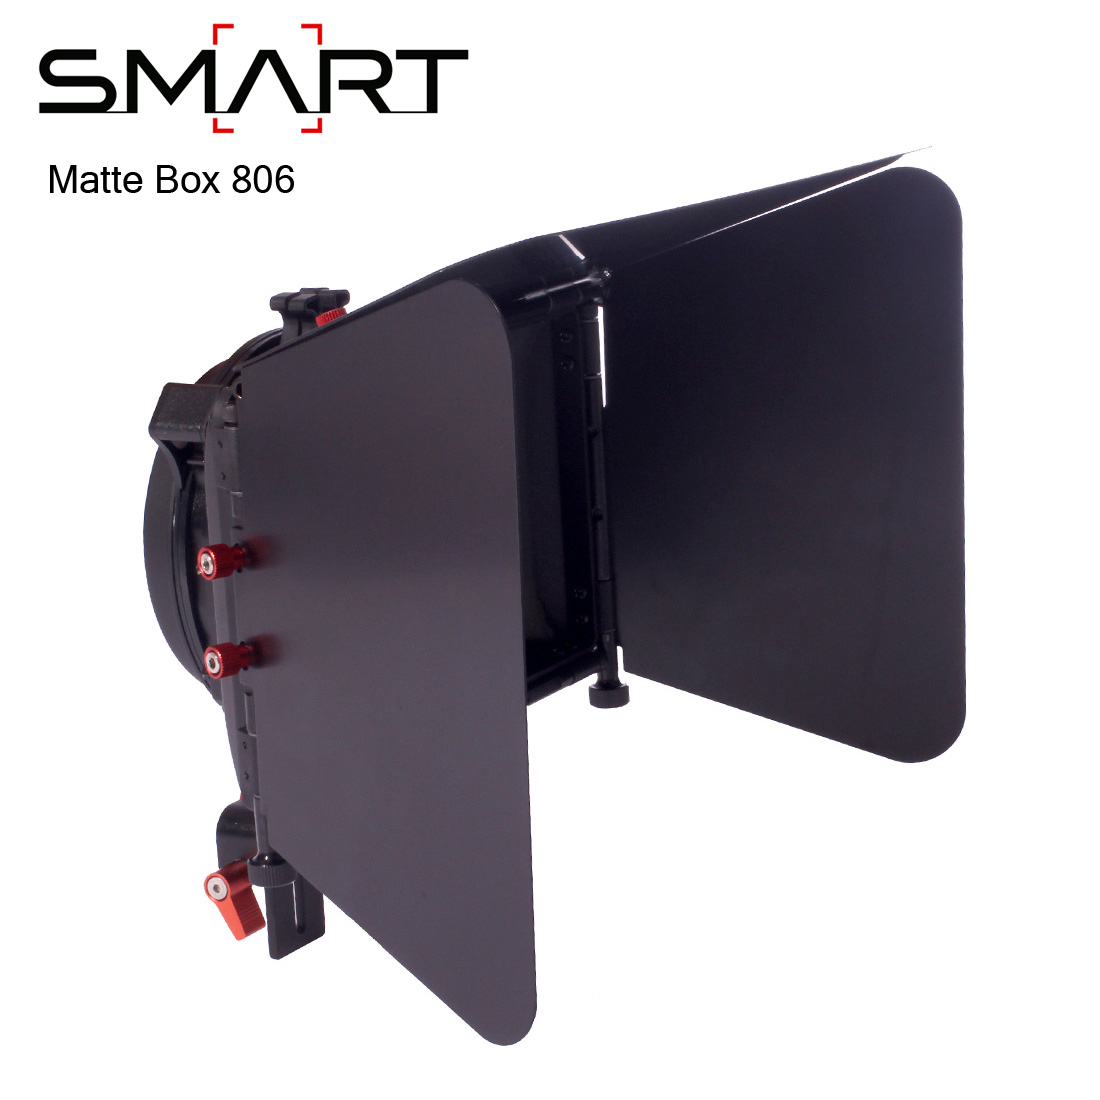 SMART Professional Matte Box 806